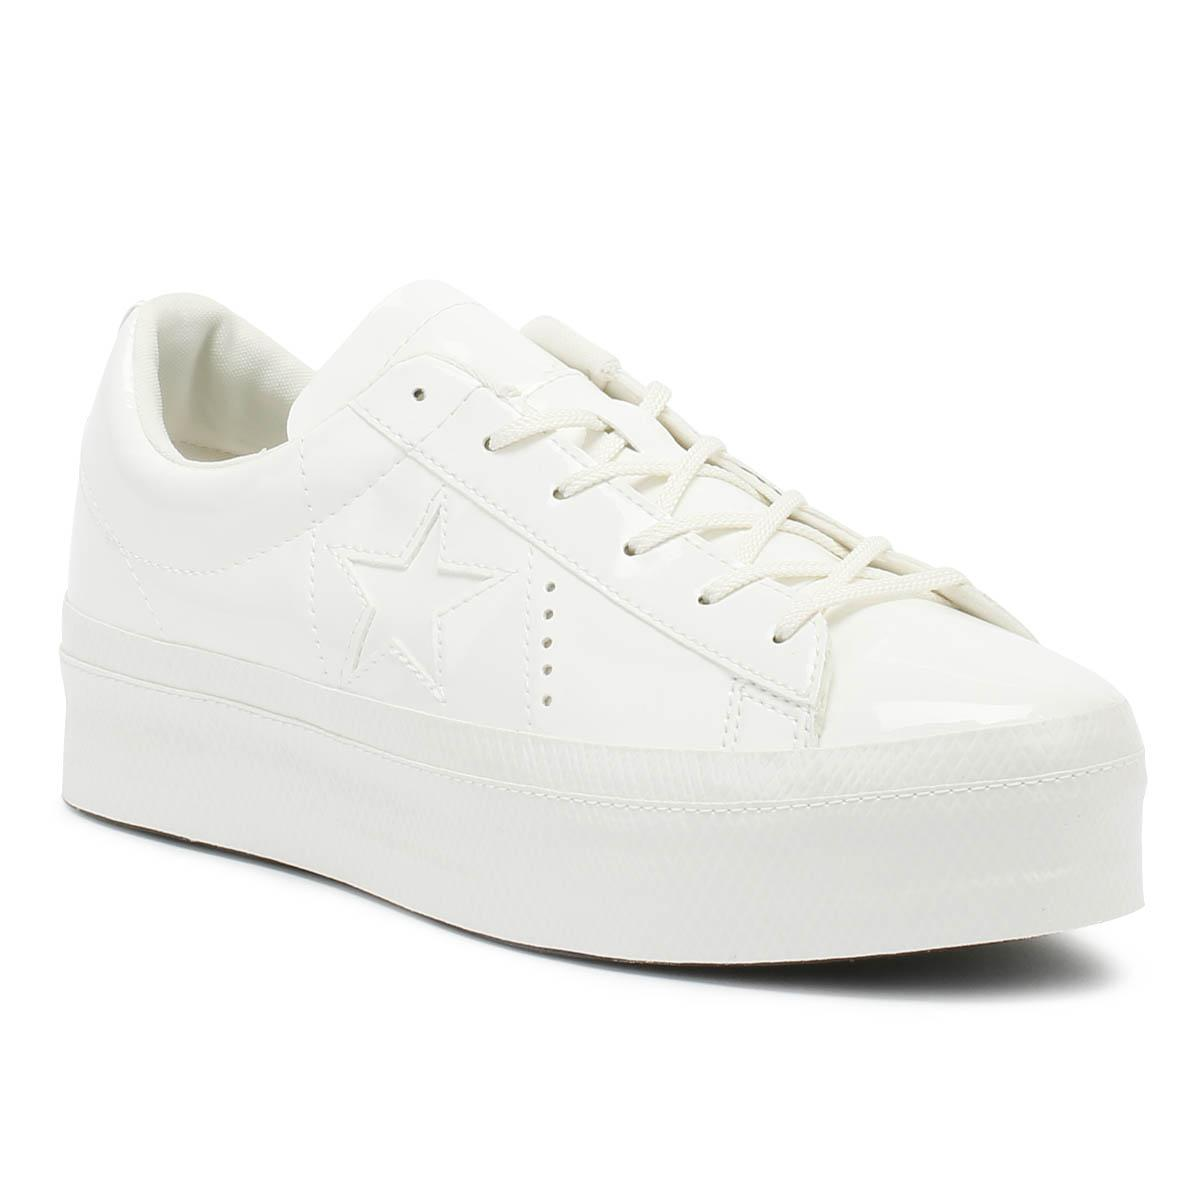 42eead690a1 Lyst - Converse One Star Womens Vintage White Platform Ox Trainers ...